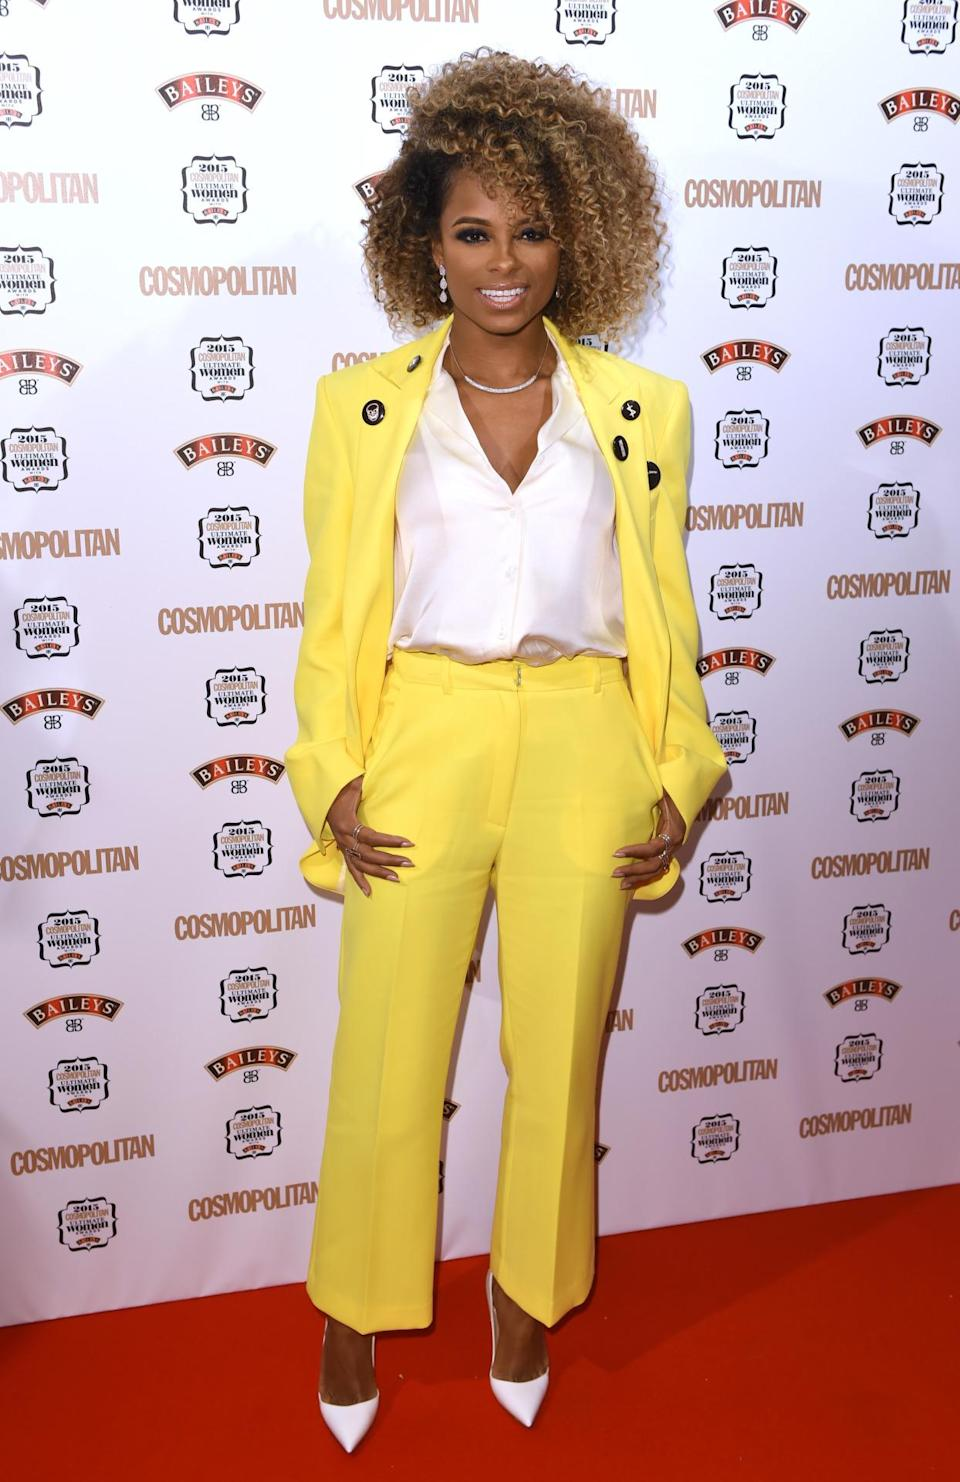 Singer Fleur East stood out from the crowd in a yellow tailored trouser suit. [Photo: Rex]